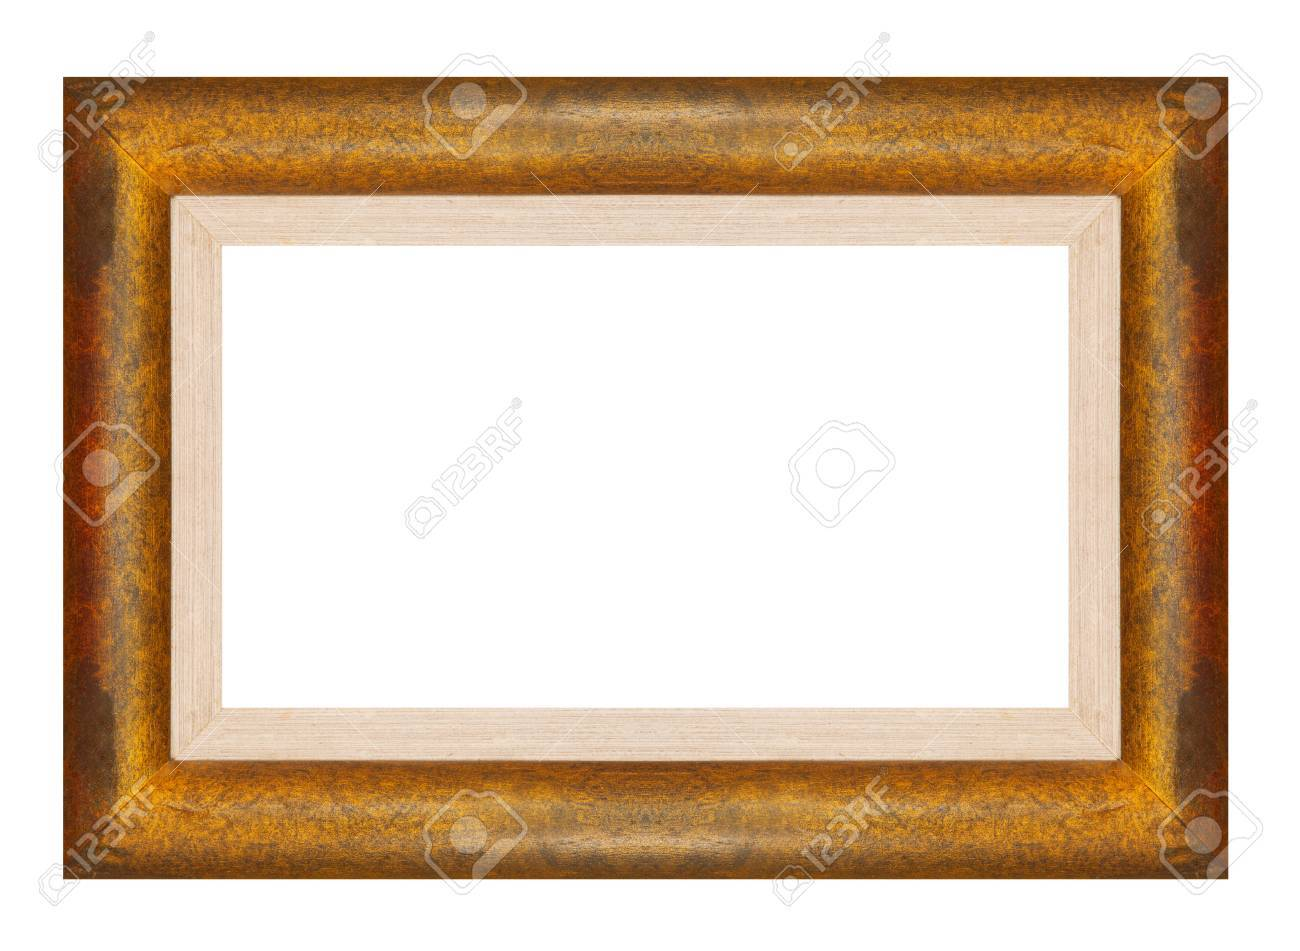 Wood Frame From Teak Wood Stock Photo, Picture And Royalty Free ...